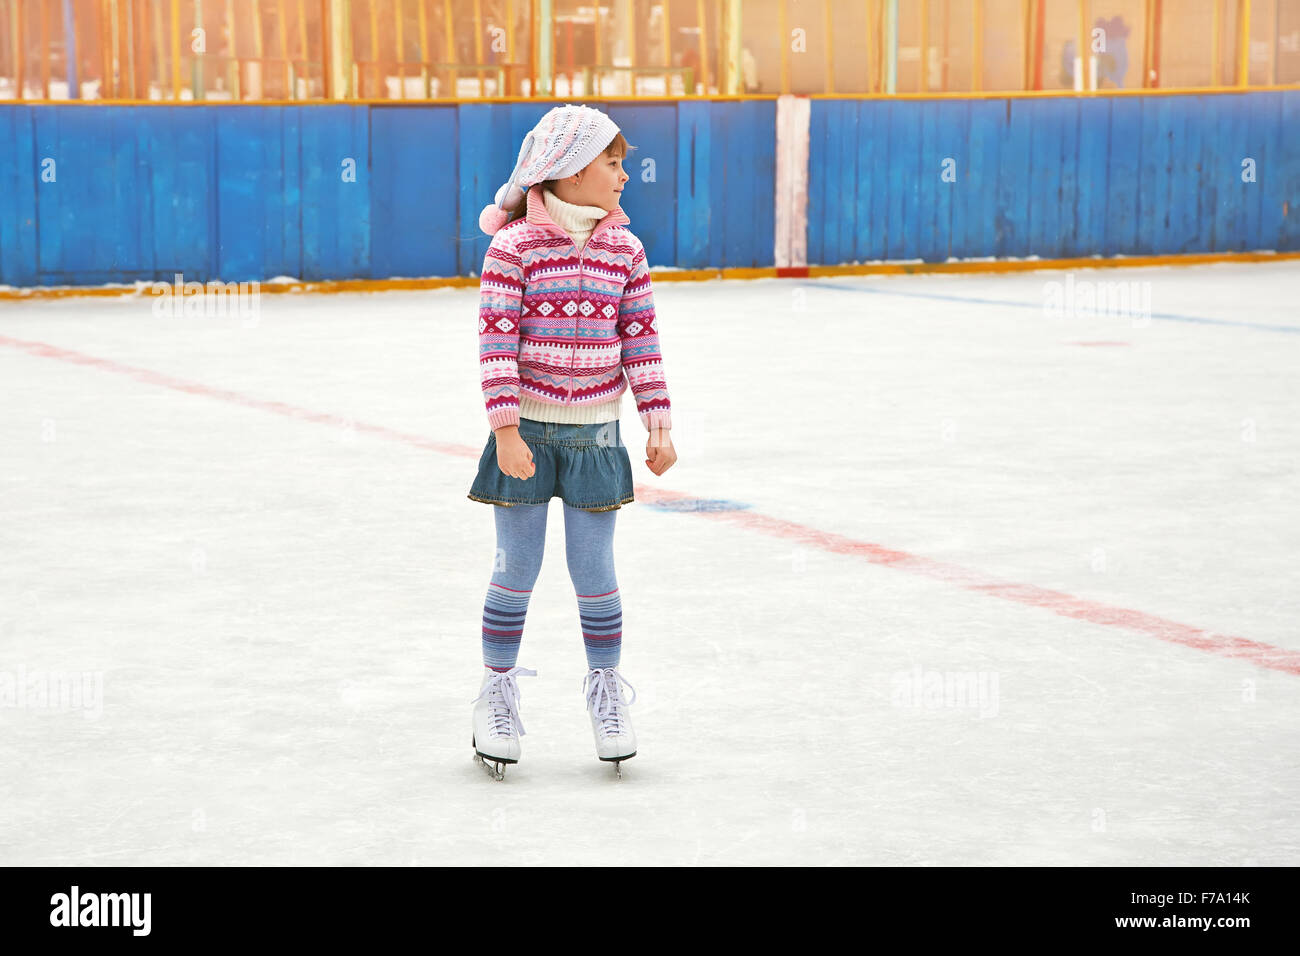 girl ice skating on rink - Stock Image